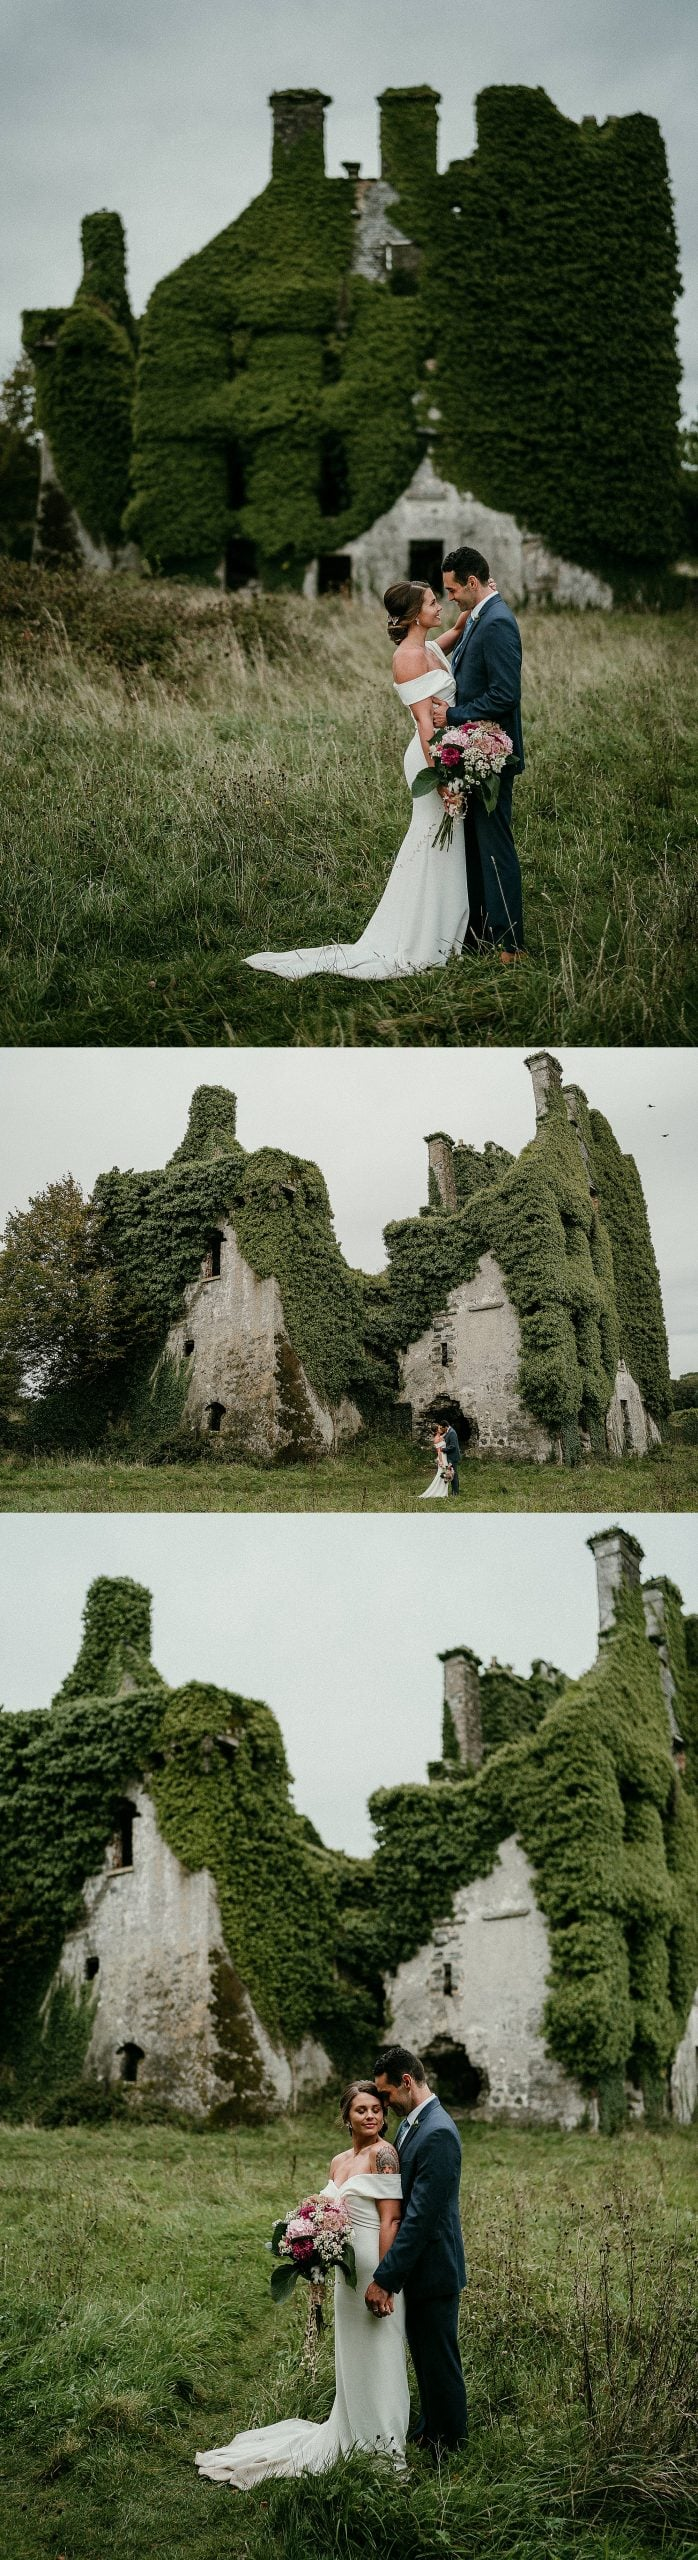 Wedding portraits in front of an ancient Irish castle in Co Galway, Ireland. Emotional elopement portraits. Irish elopement photographer. Menlo Castle elopements